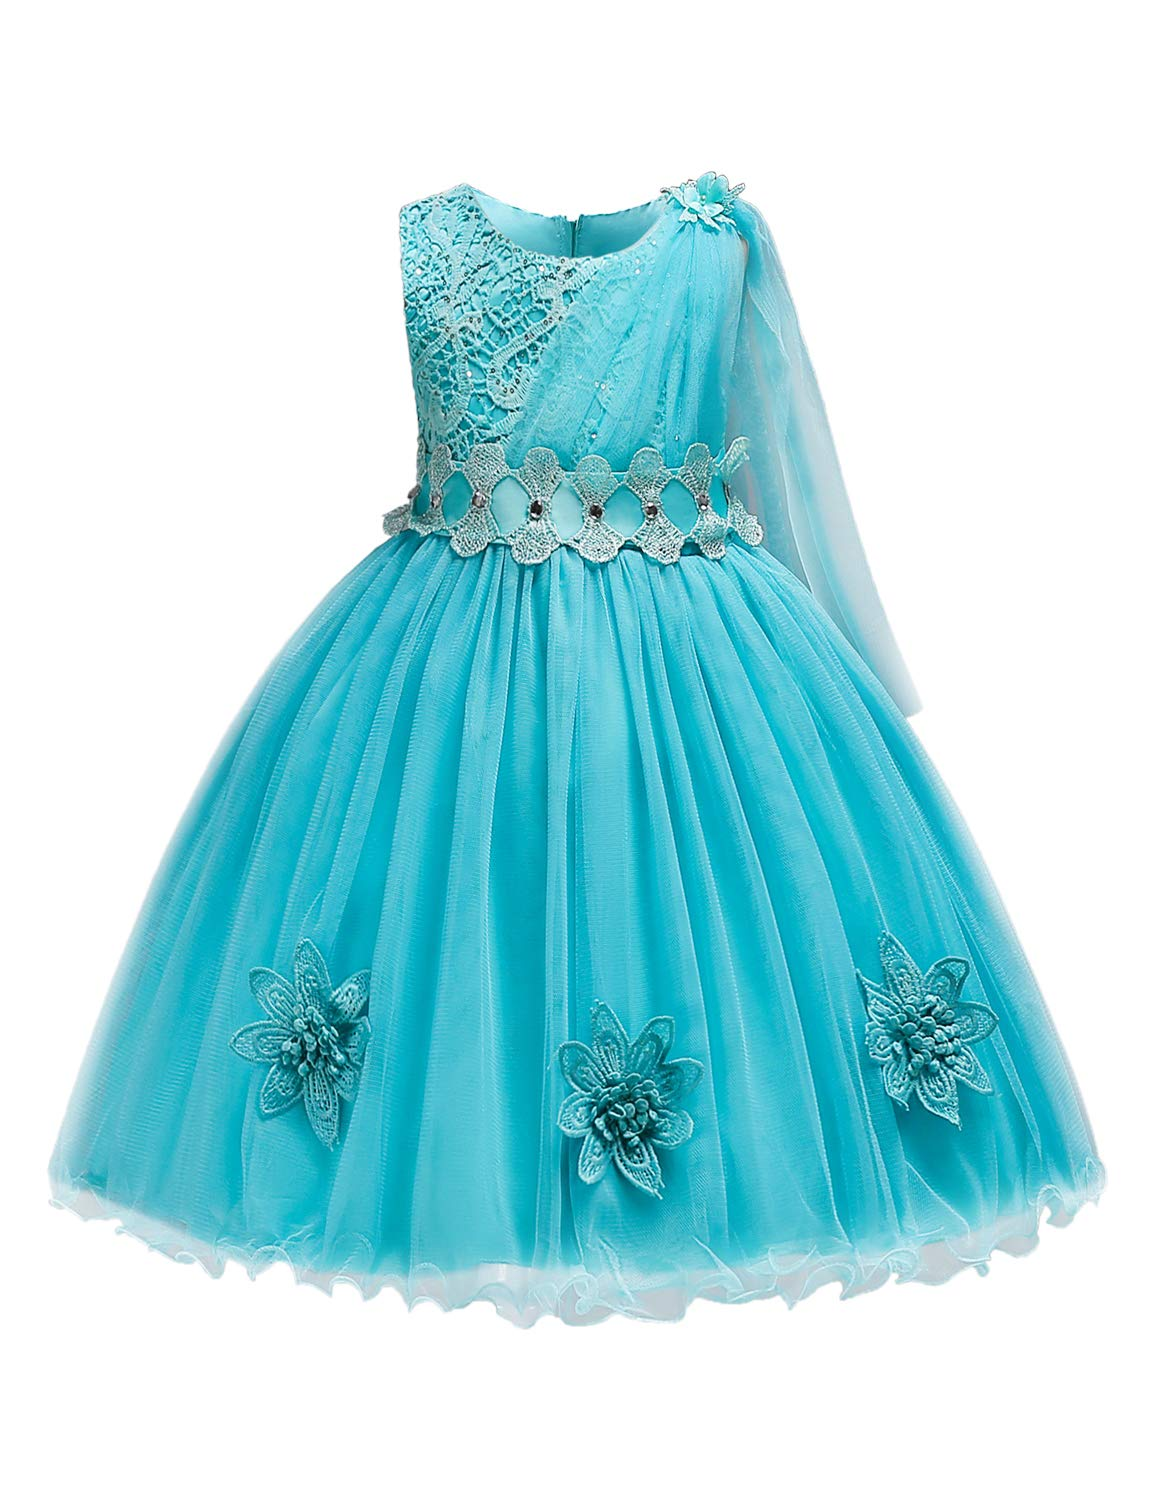 Blevonh Elegant Dresses for Girls,Girl Sleeveless O Neck Multilayered Tulle Lace Appliques Dress Kids Travel Wear Casual Clothes Pageant Top Bodice Ball Gown Blue 140(5-6Y)